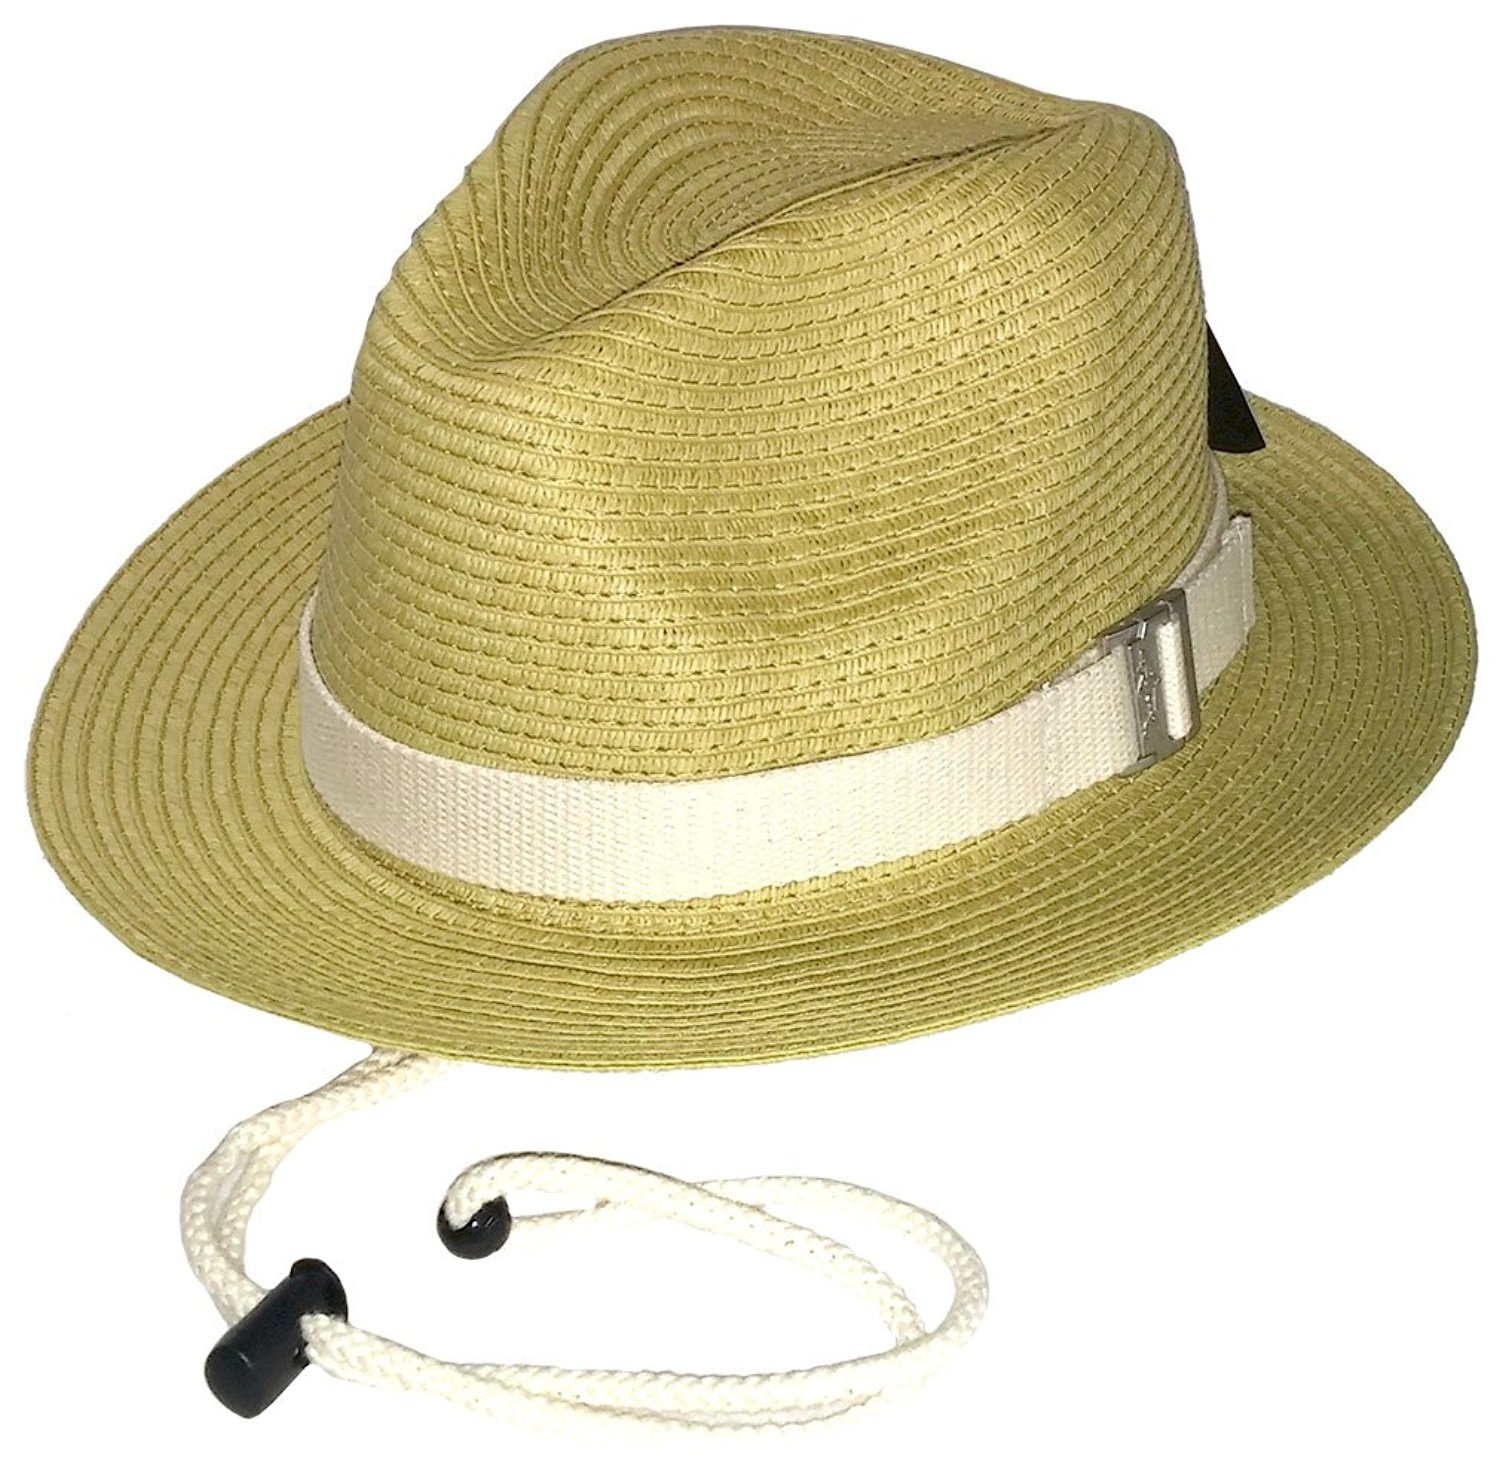 9a86aff085e Get Quotations · GREG NORMAN SHARK Branded Men s Straw Hat - GNS004 -  Natural